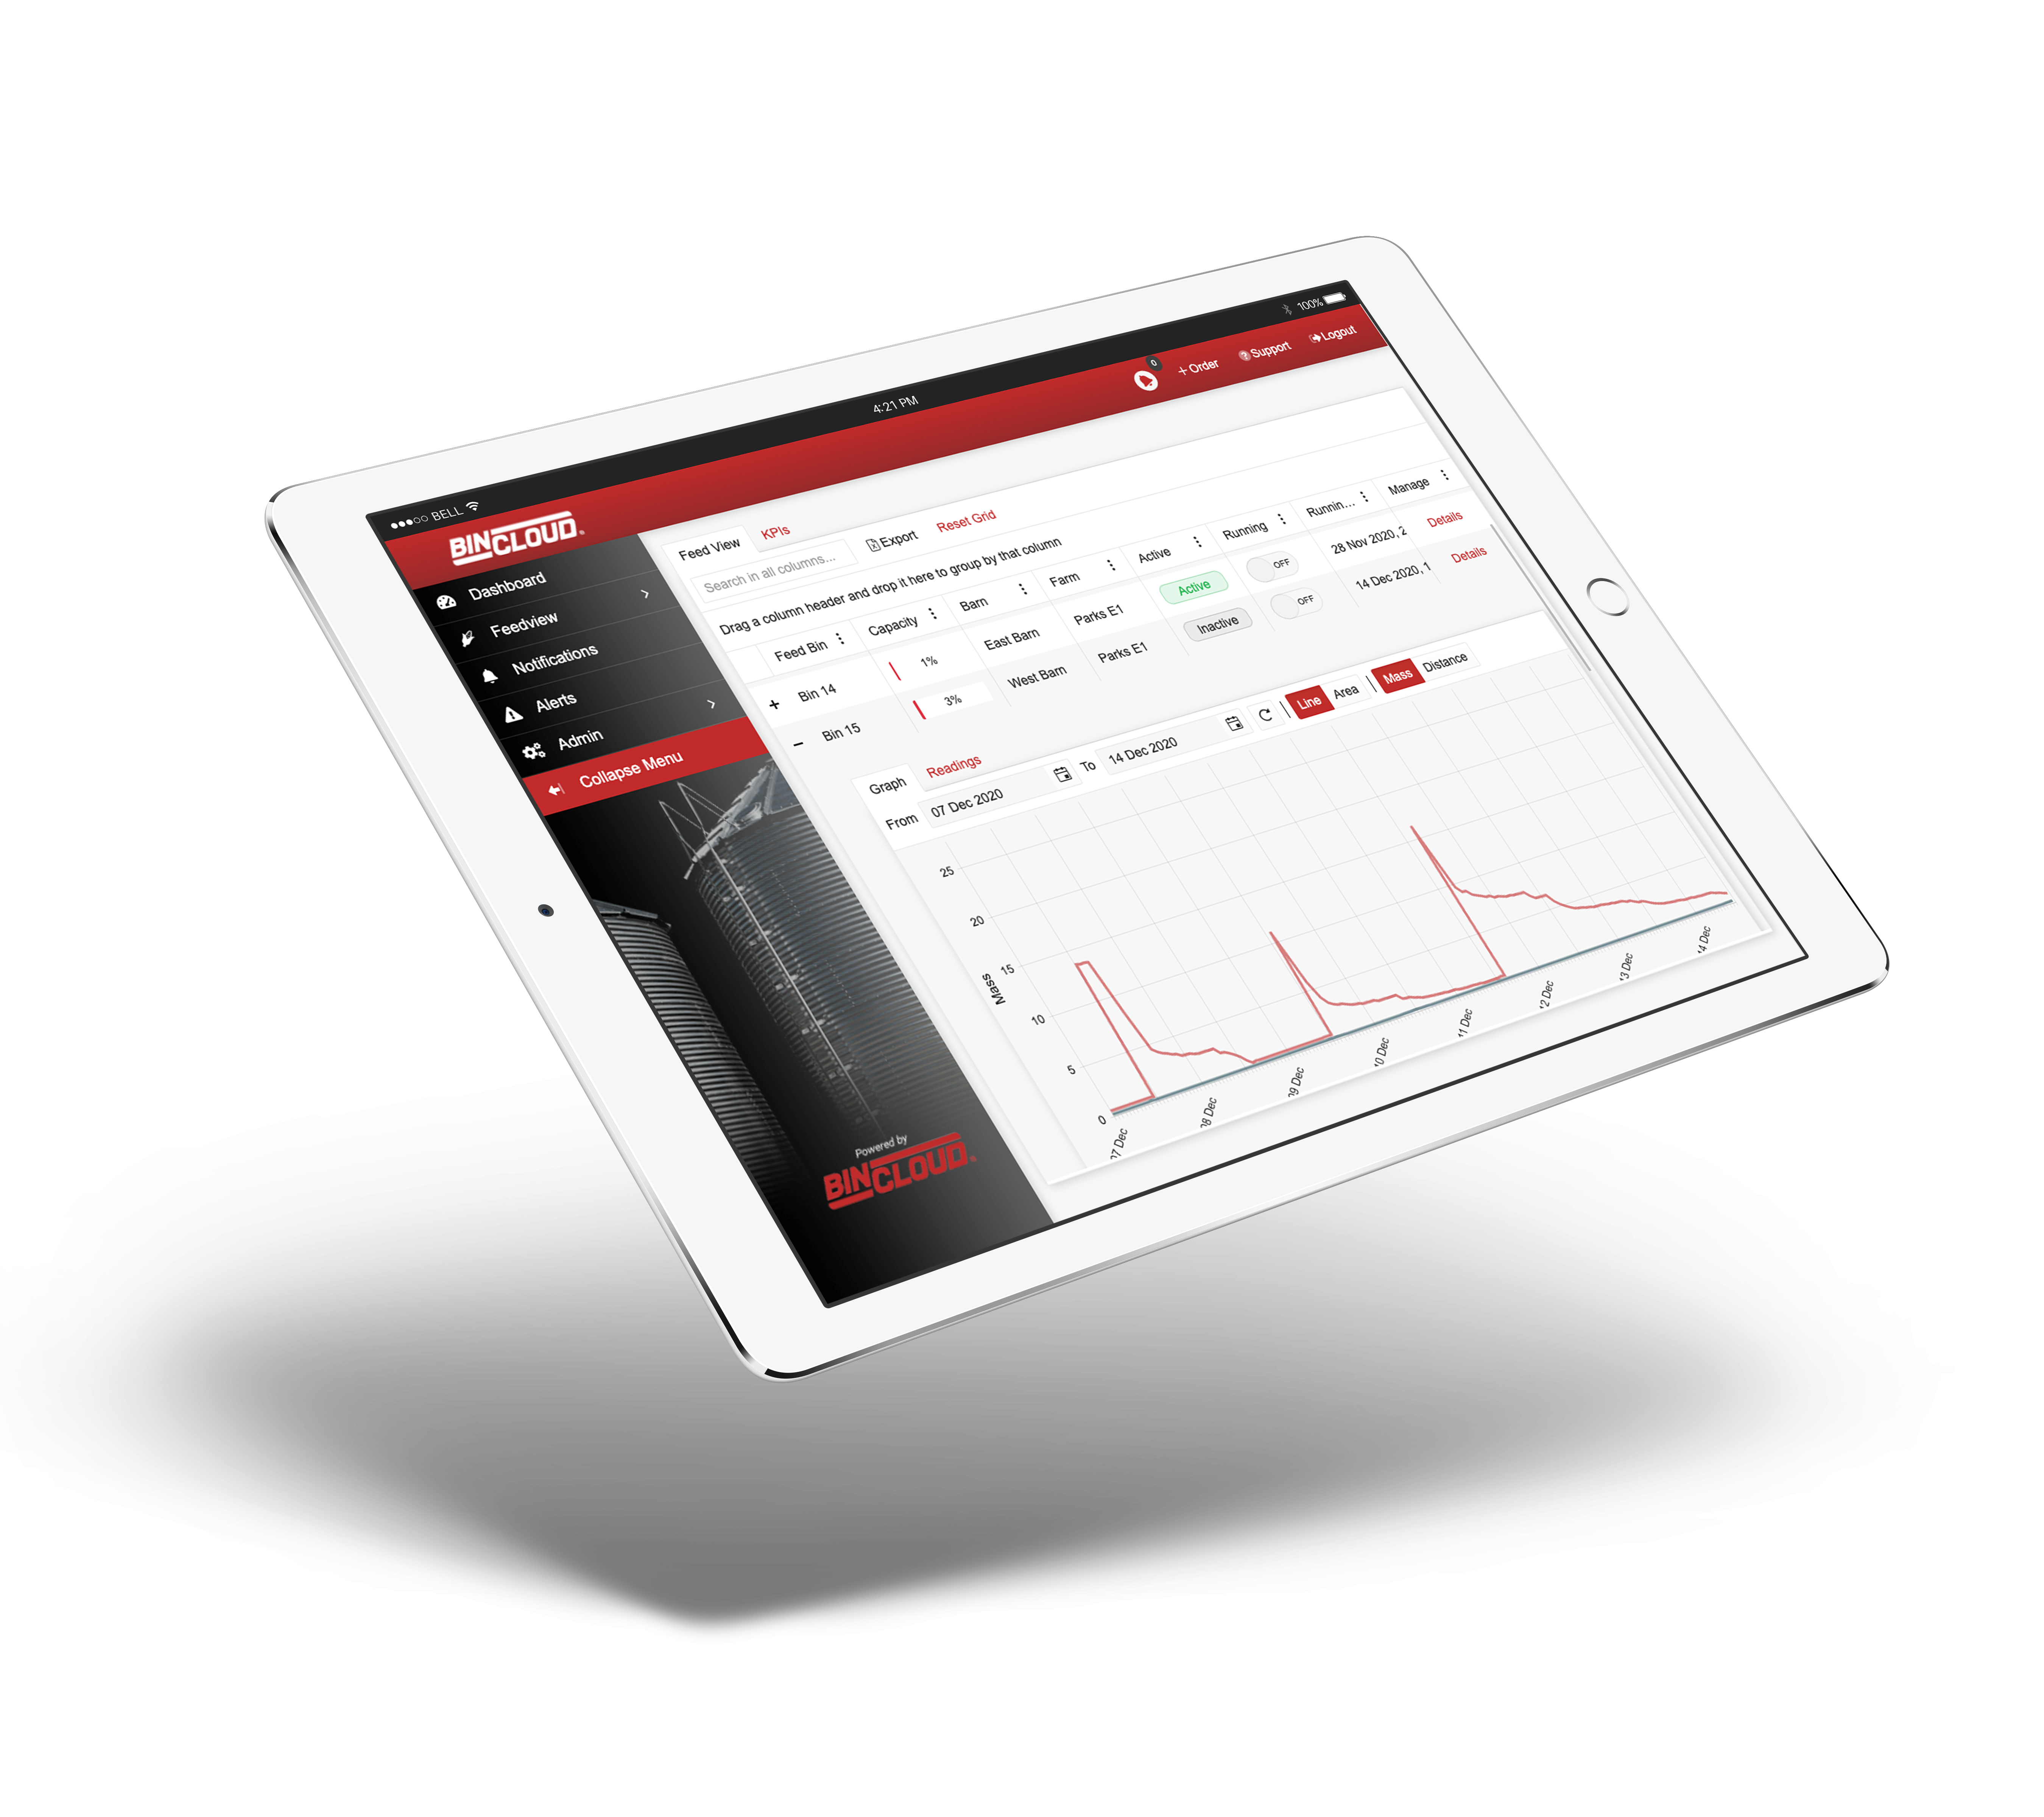 BinCloud inventory management software on iPad